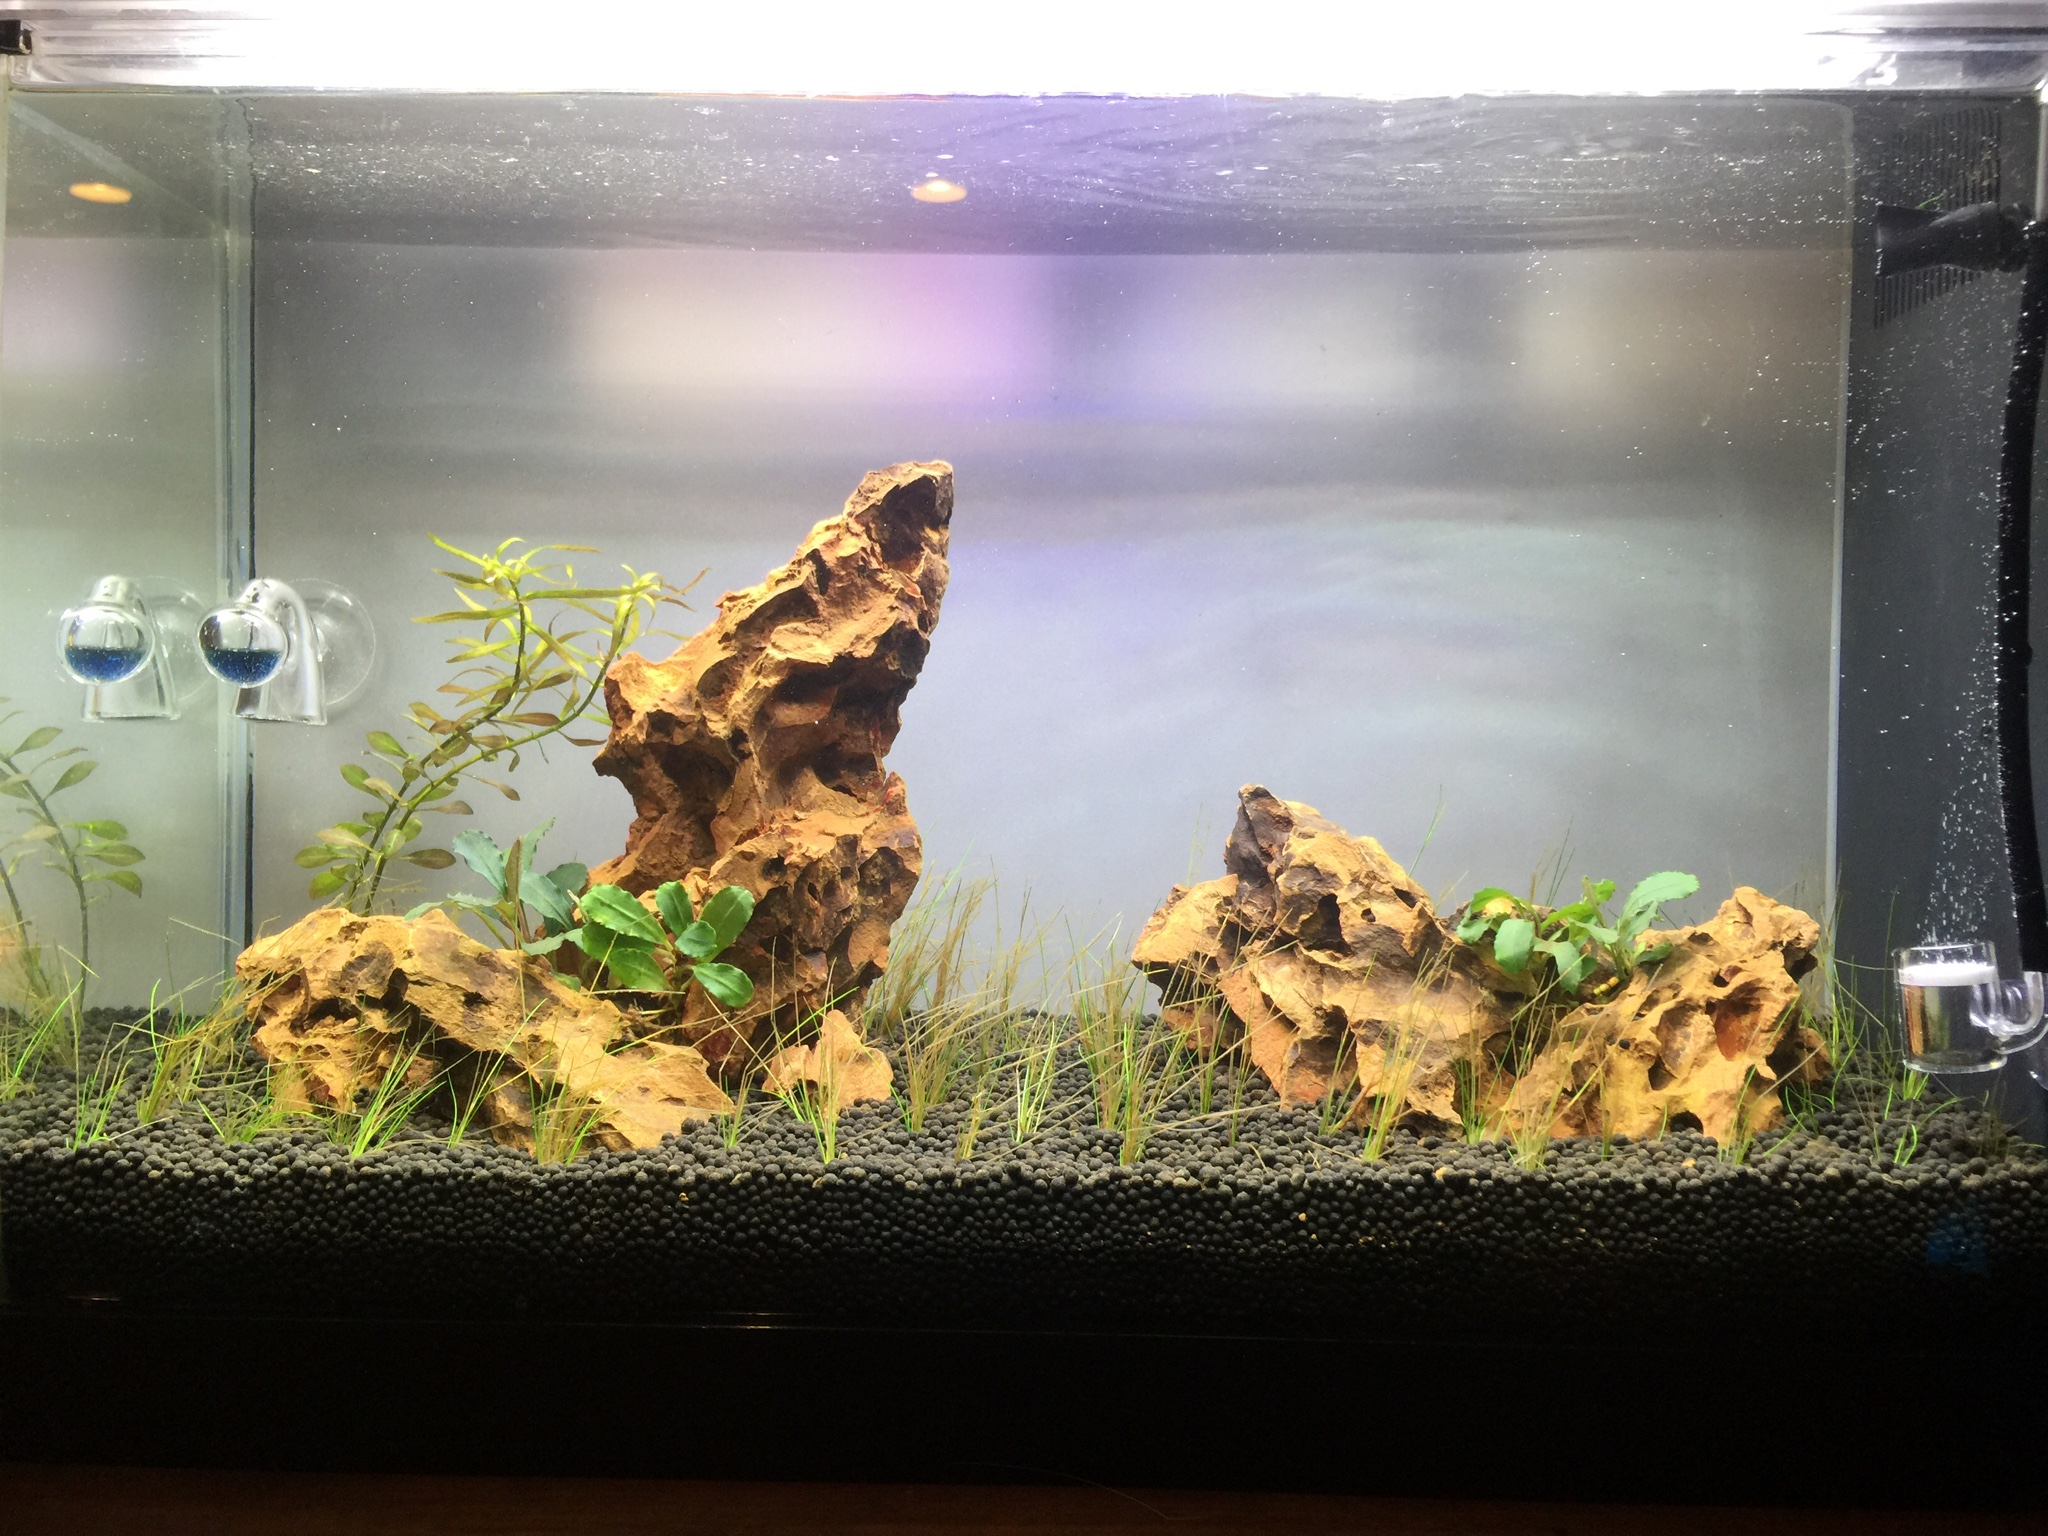 I Recently Setup An Old Fluval Spec V That Iu0027ve Decided To Attempt A Simple  Scape And Try My Hand At More Advanced Plants And CO2.